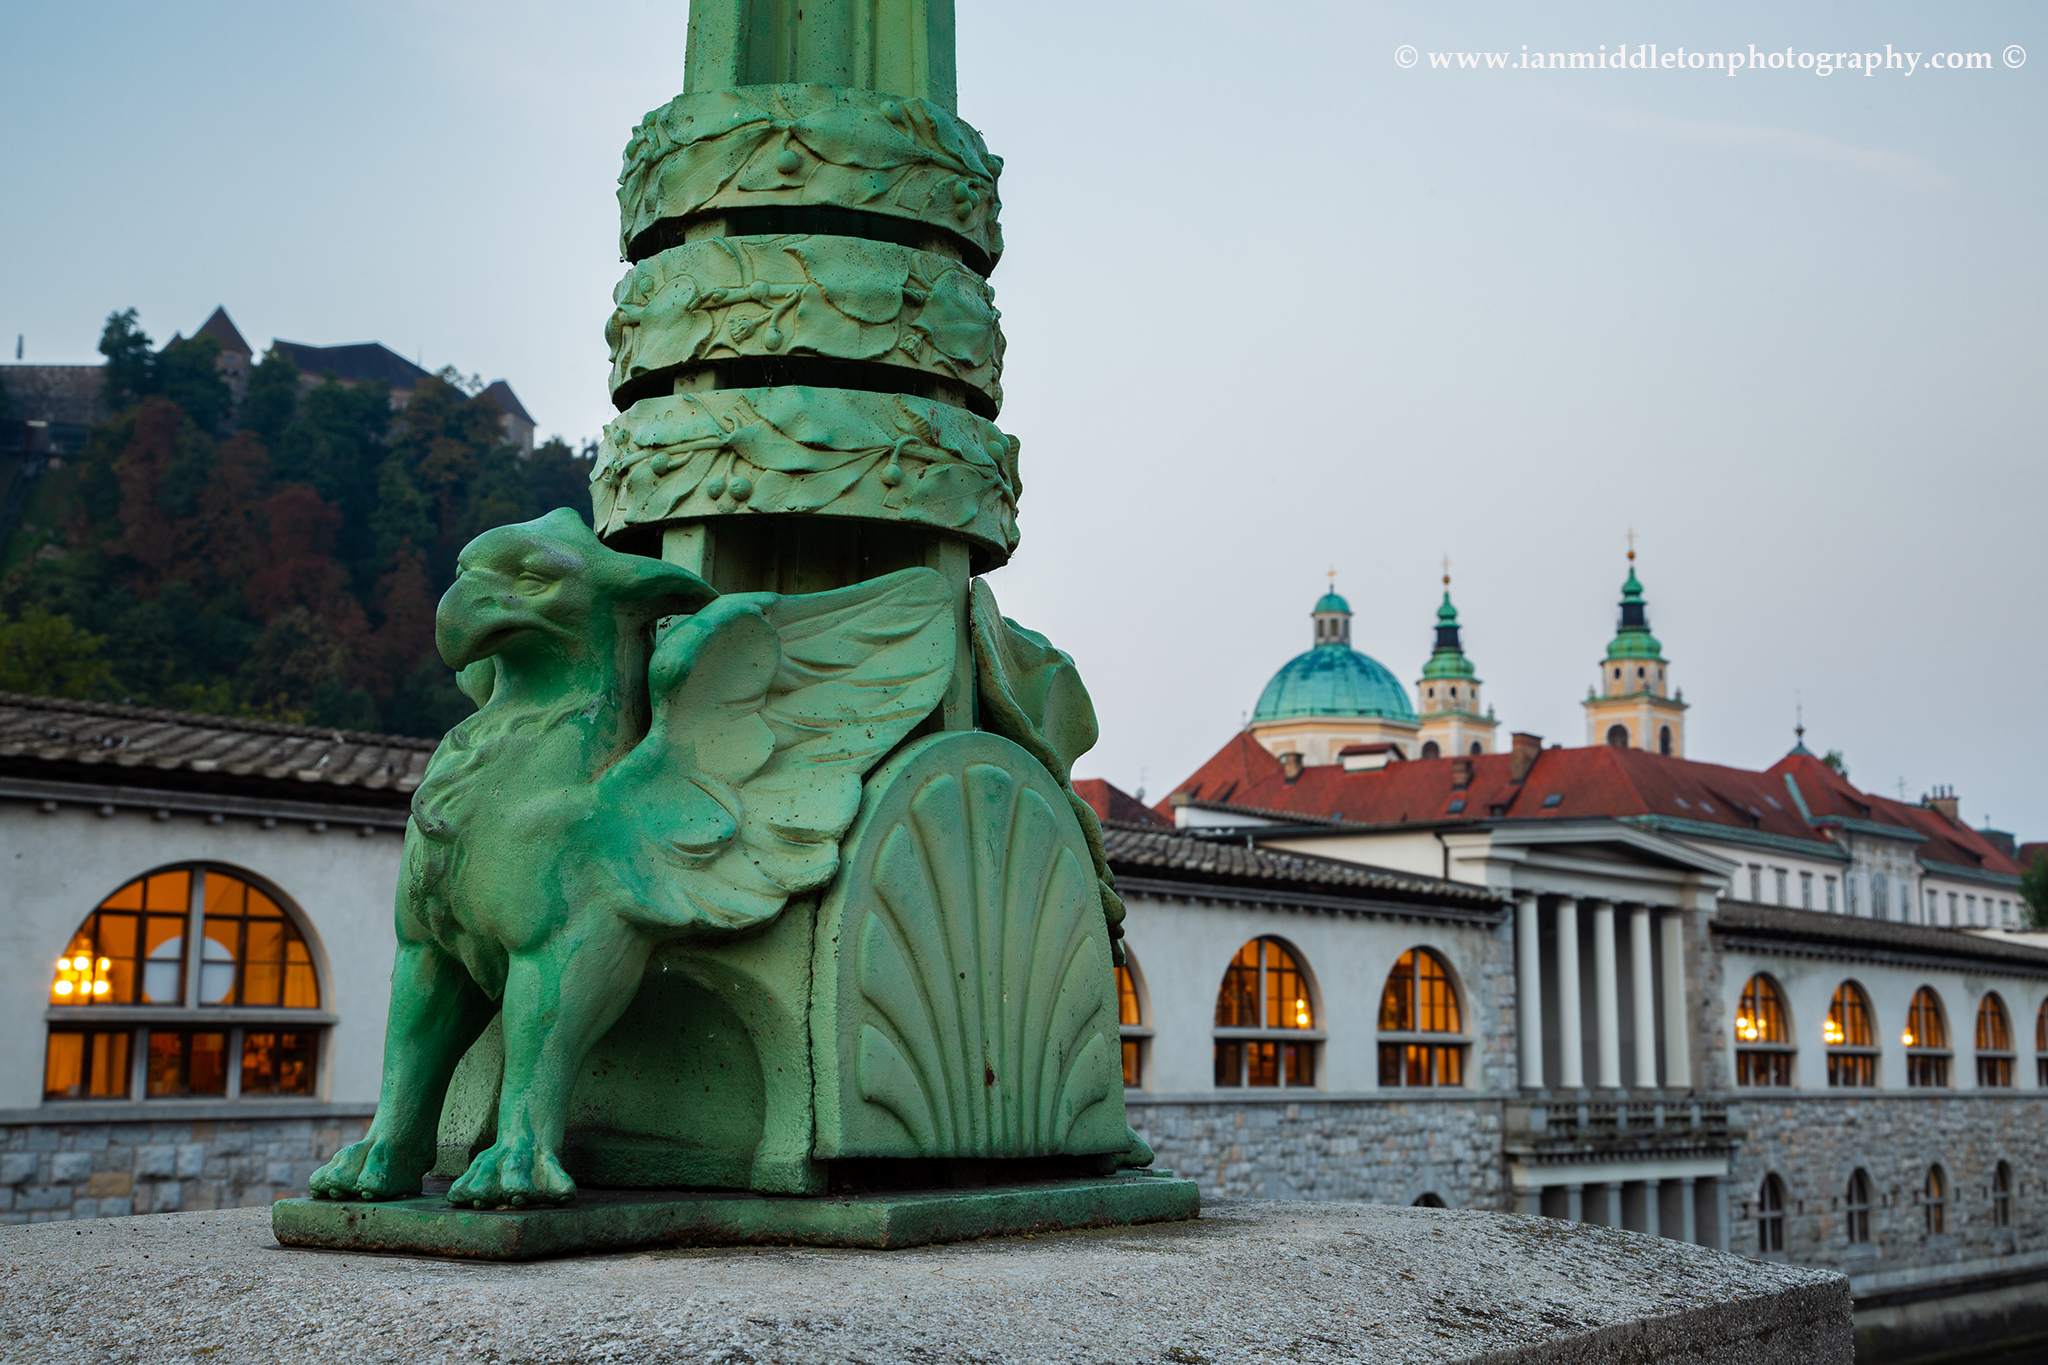 Ljubljana Dragon Bridge Griffin with castle, marketplace and cathedral of Saint Nicholas in the background, Slovenia.